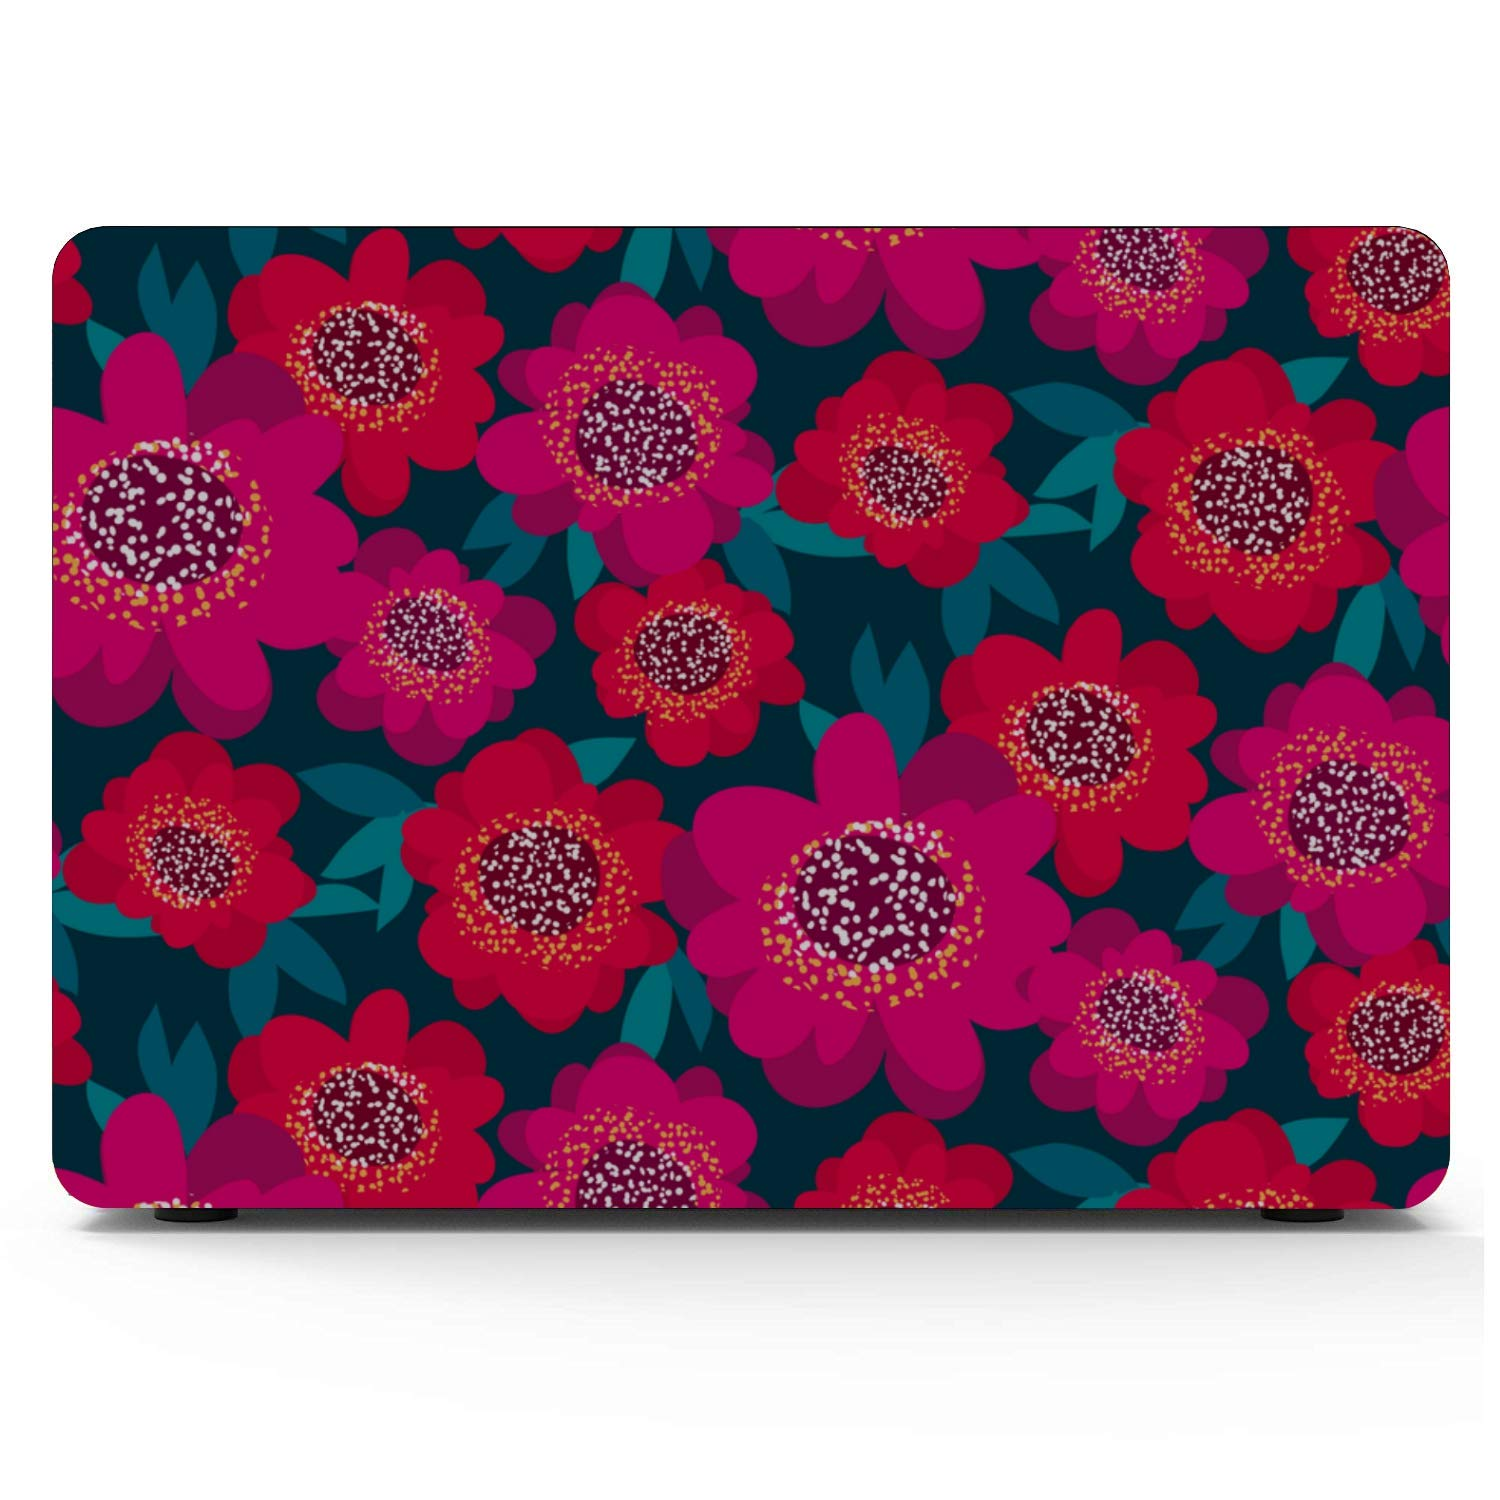 Mac Laptop Cover Rose Red Retro Romatic Spring Peony Plastic Hard Shell Compatible Mac Air 11 Pro 13 15 Mac Computer Cover Protection for MacBook 2016-2019 Version